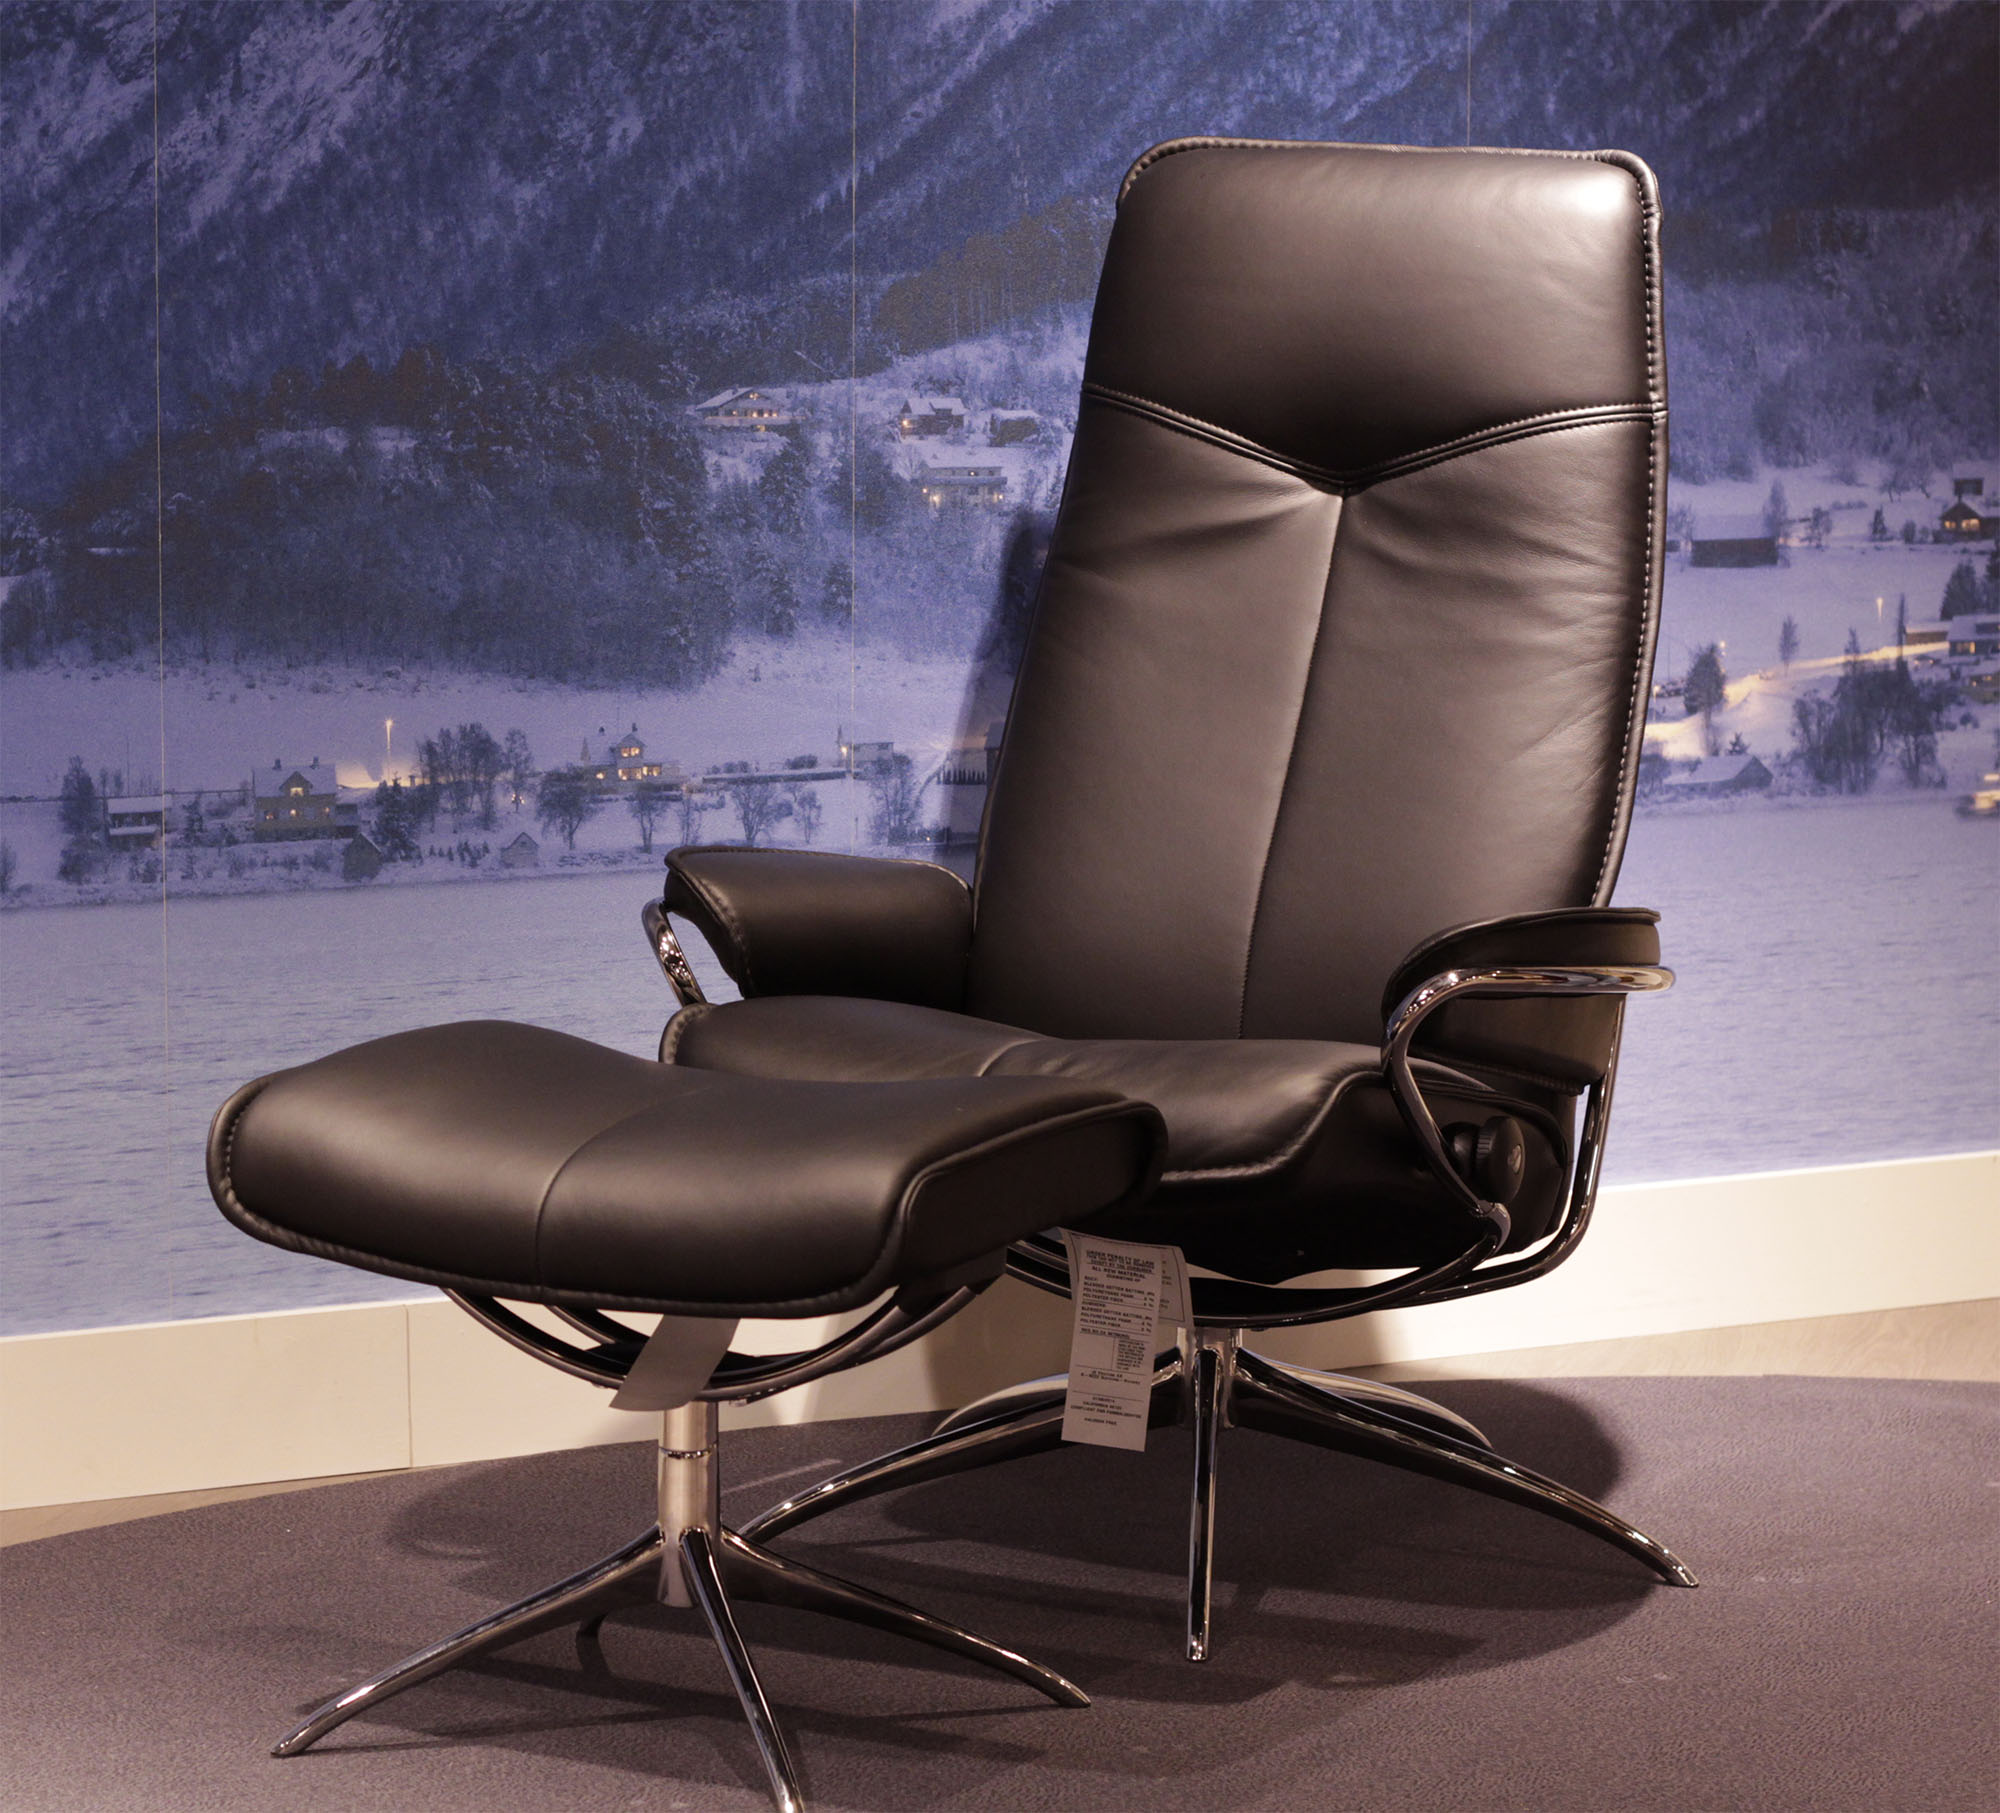 Delicieux Stressless Stressless City High Back Paloma Clementine Leather Recliner  Chair By Ekornes